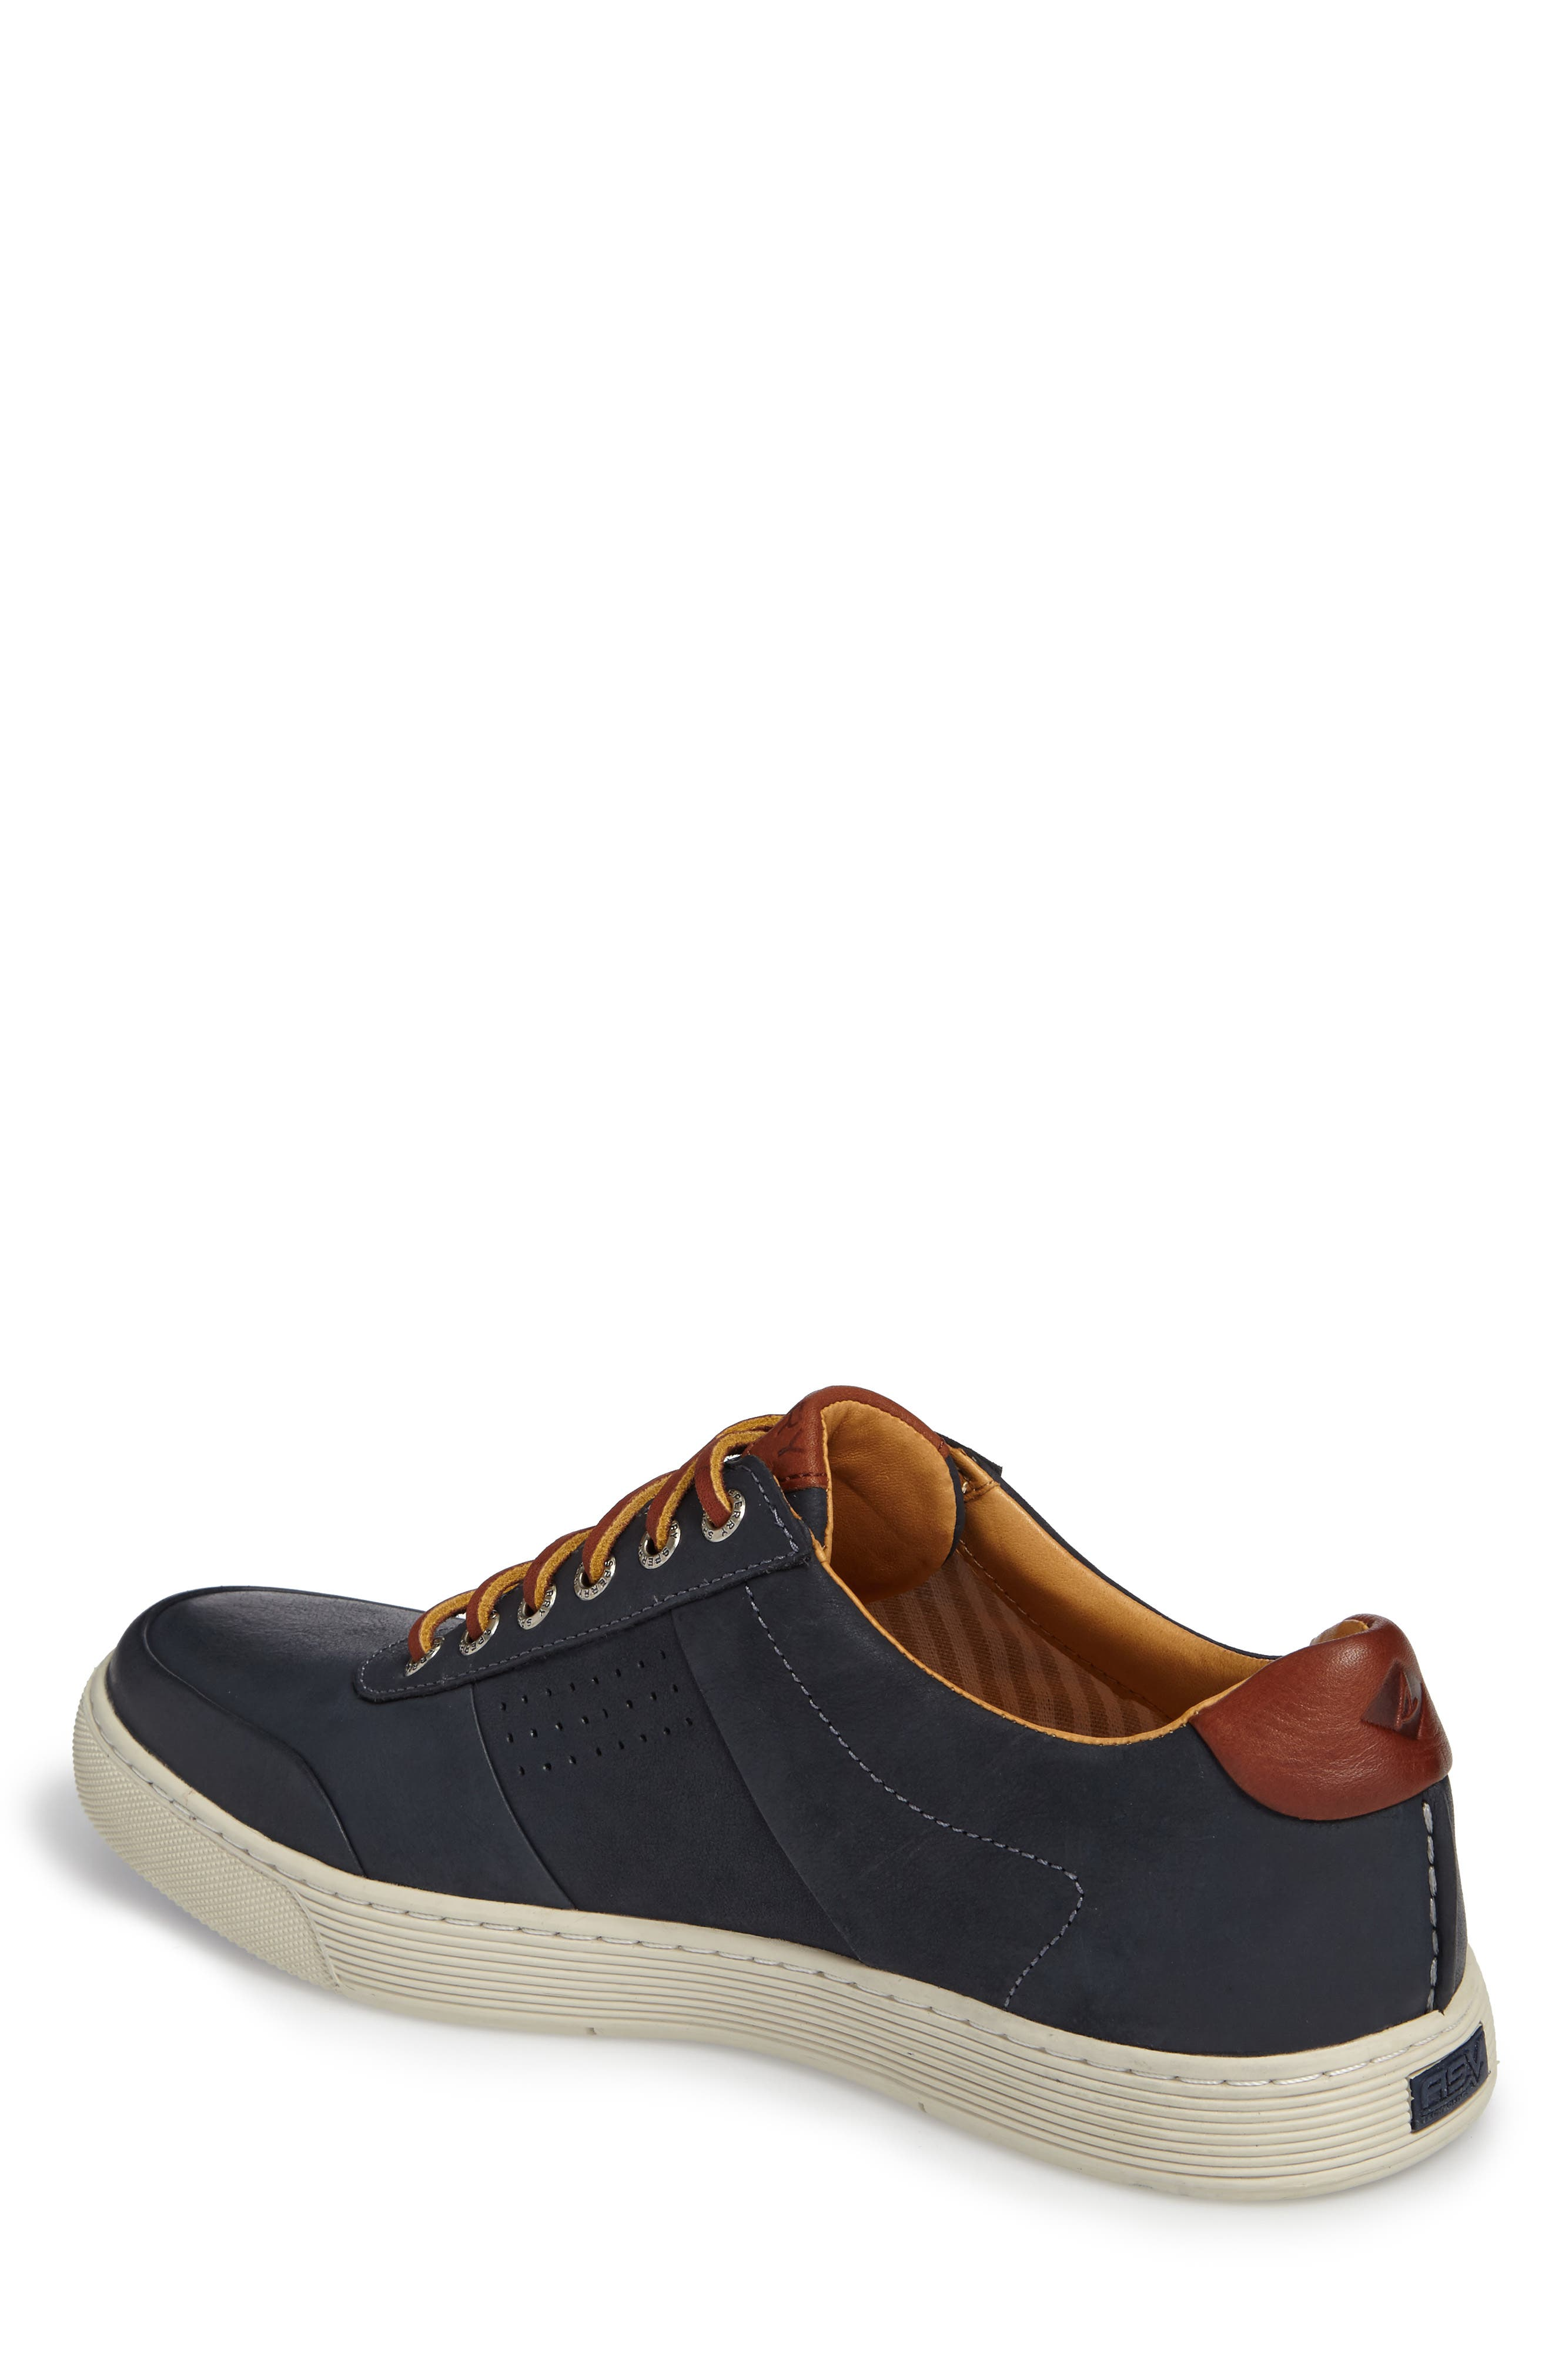 Gold Cup Sport Sneaker,                             Alternate thumbnail 2, color,                             Navy Leather